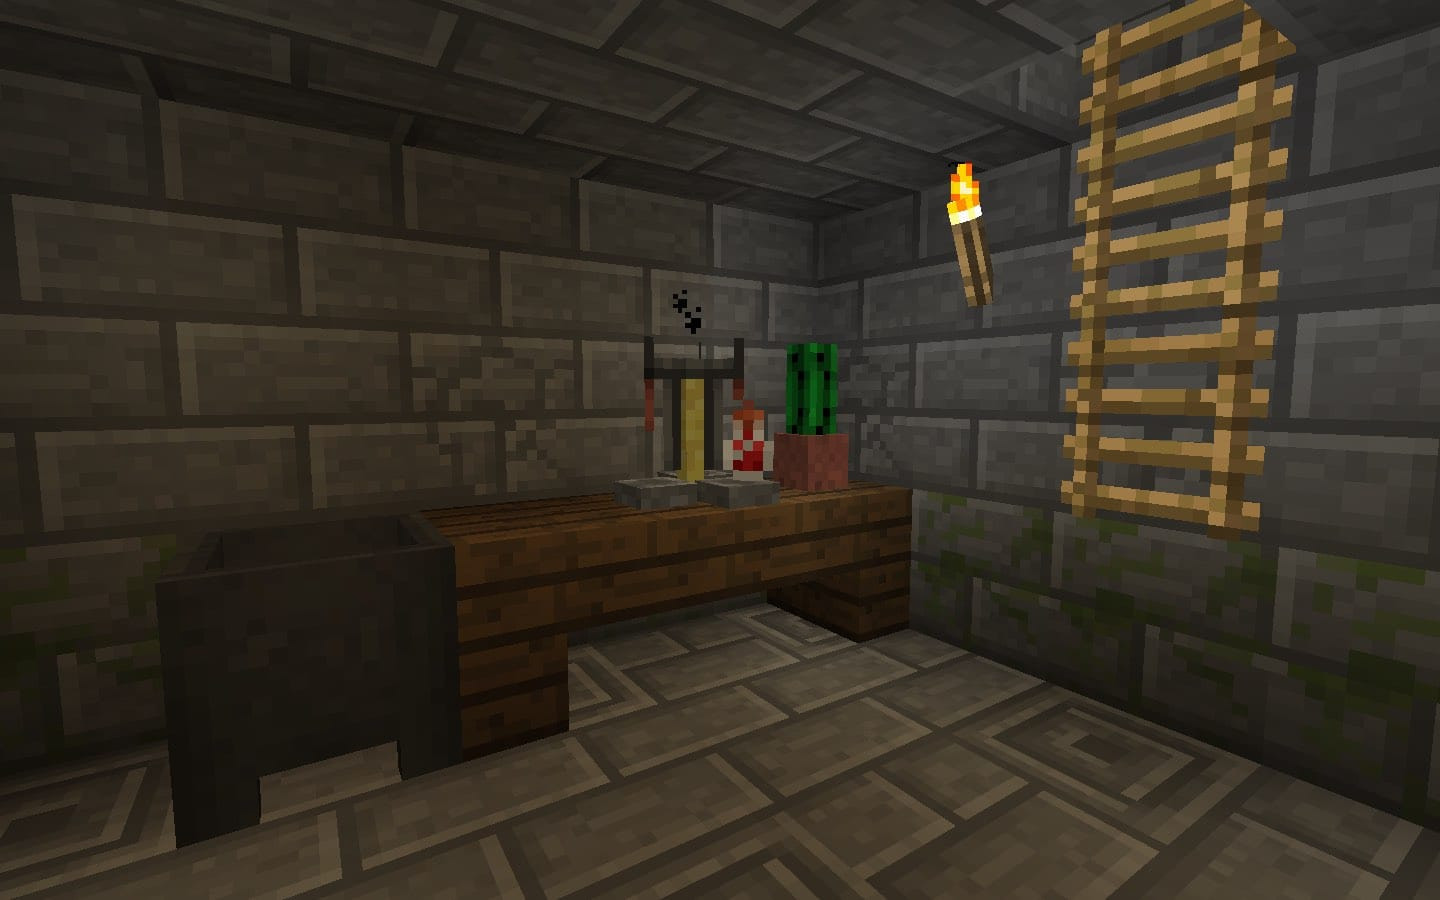 Best ideas about Minecraft Basement Ideas . Save or Pin Basement pictures Fabulous Home Design Now.